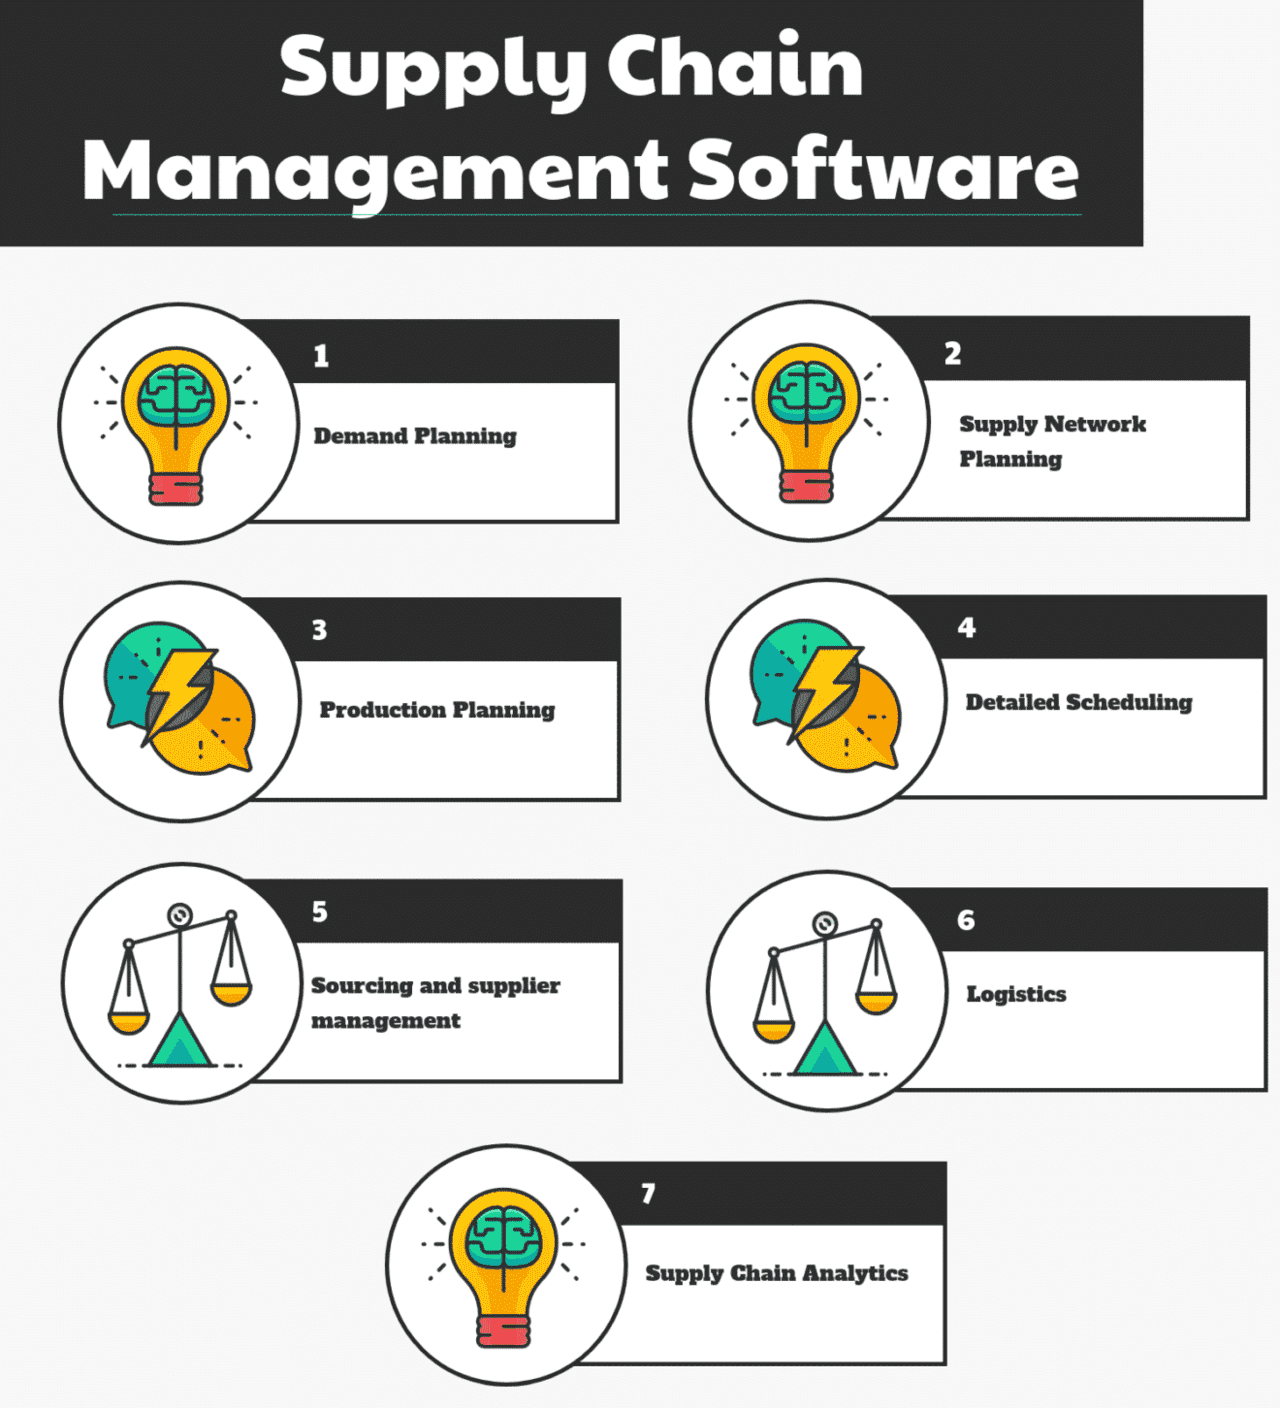 Top 15 Supply Chain Management Software In 2020 Reviews Features Pricing Comparison Pat Research B2b Reviews Buying Guides Best Practices